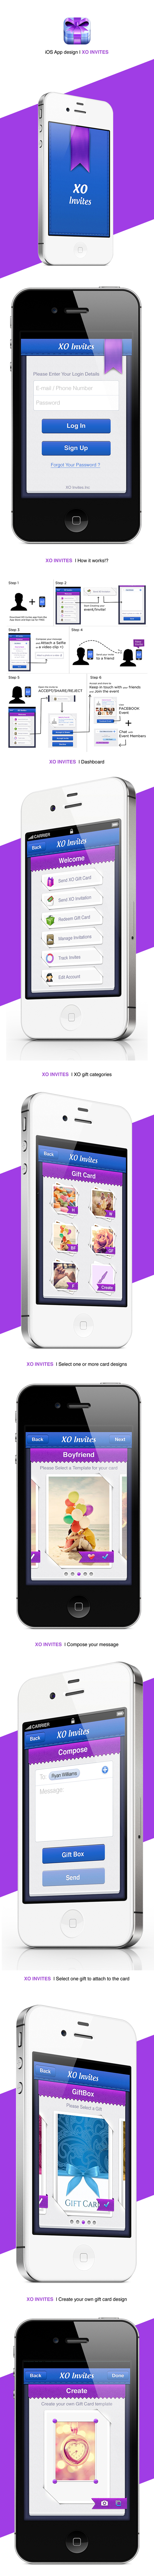 Amazing Mobile App UI Designs with Ultimate User Experience - 35